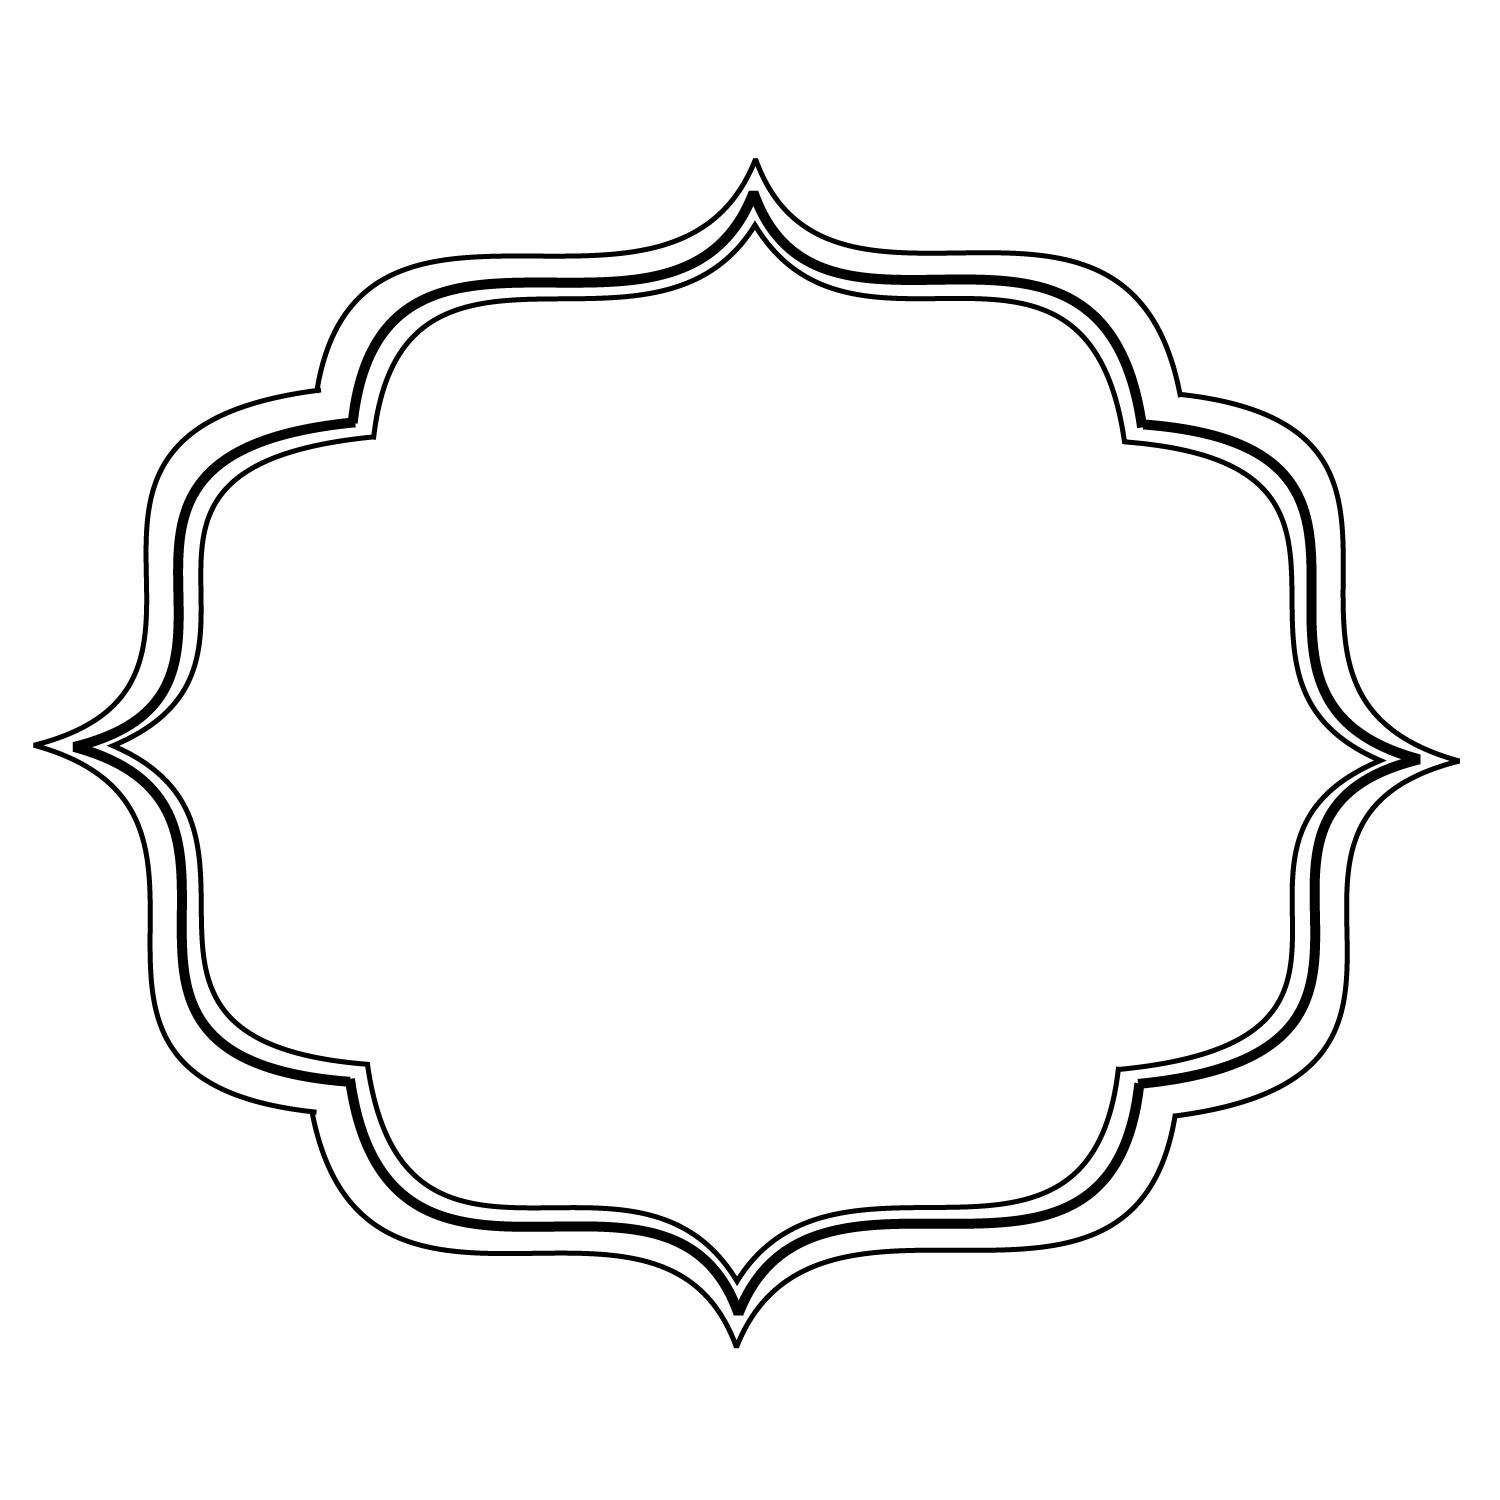 simple filigree scroll designs frame image vector clip art online royalty free